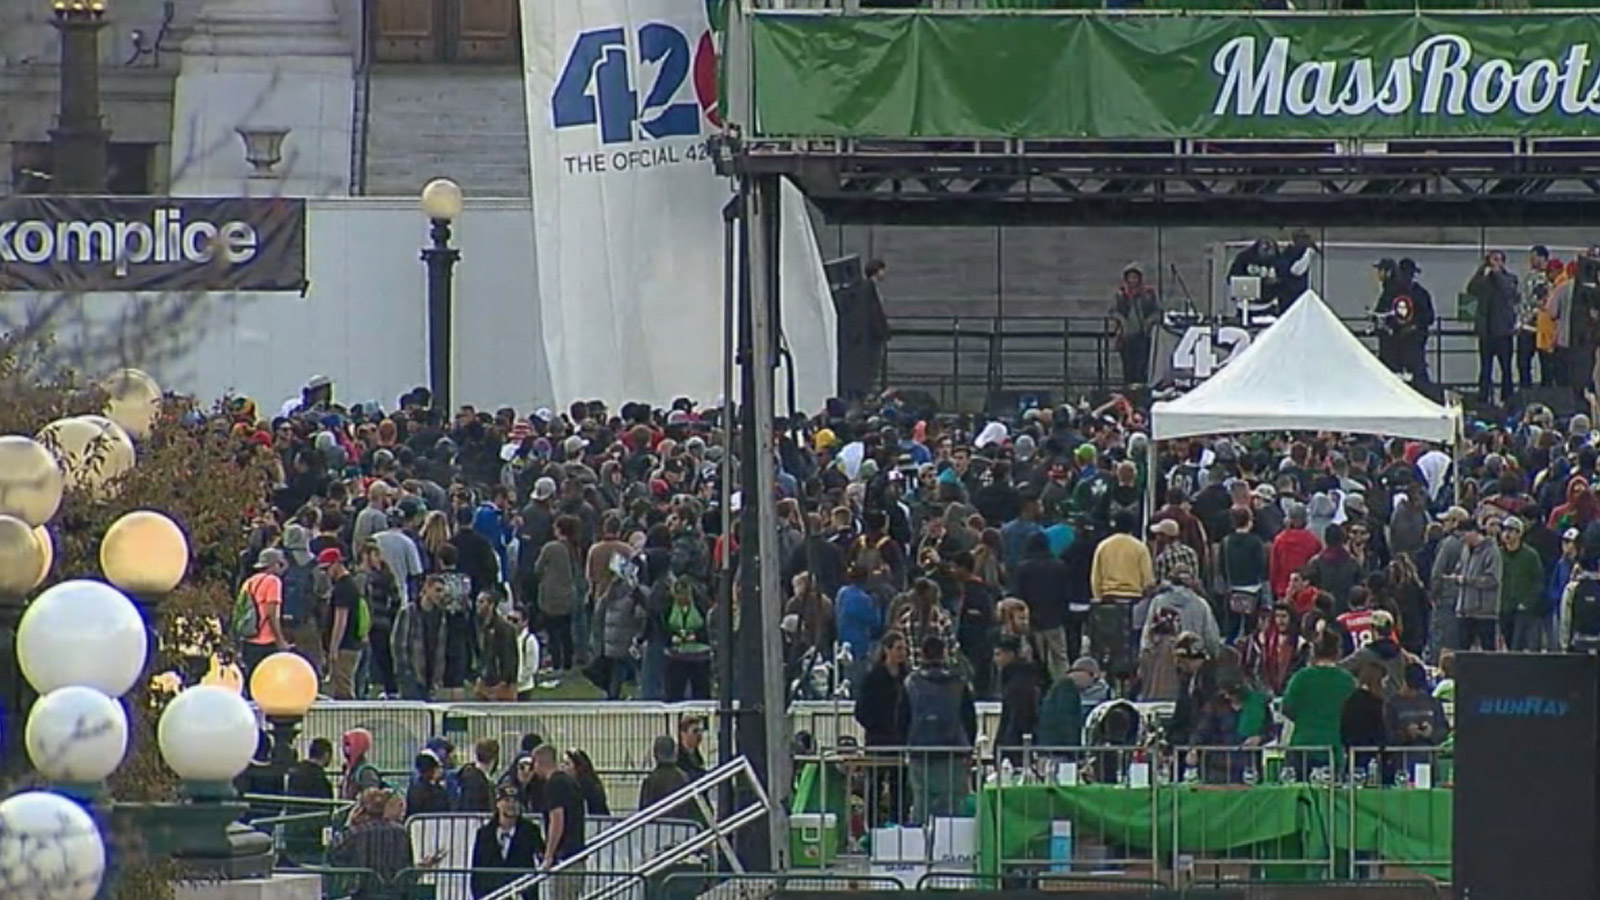 The 4/20 rally at Civic Center Park on Saturday (credit: CBS)